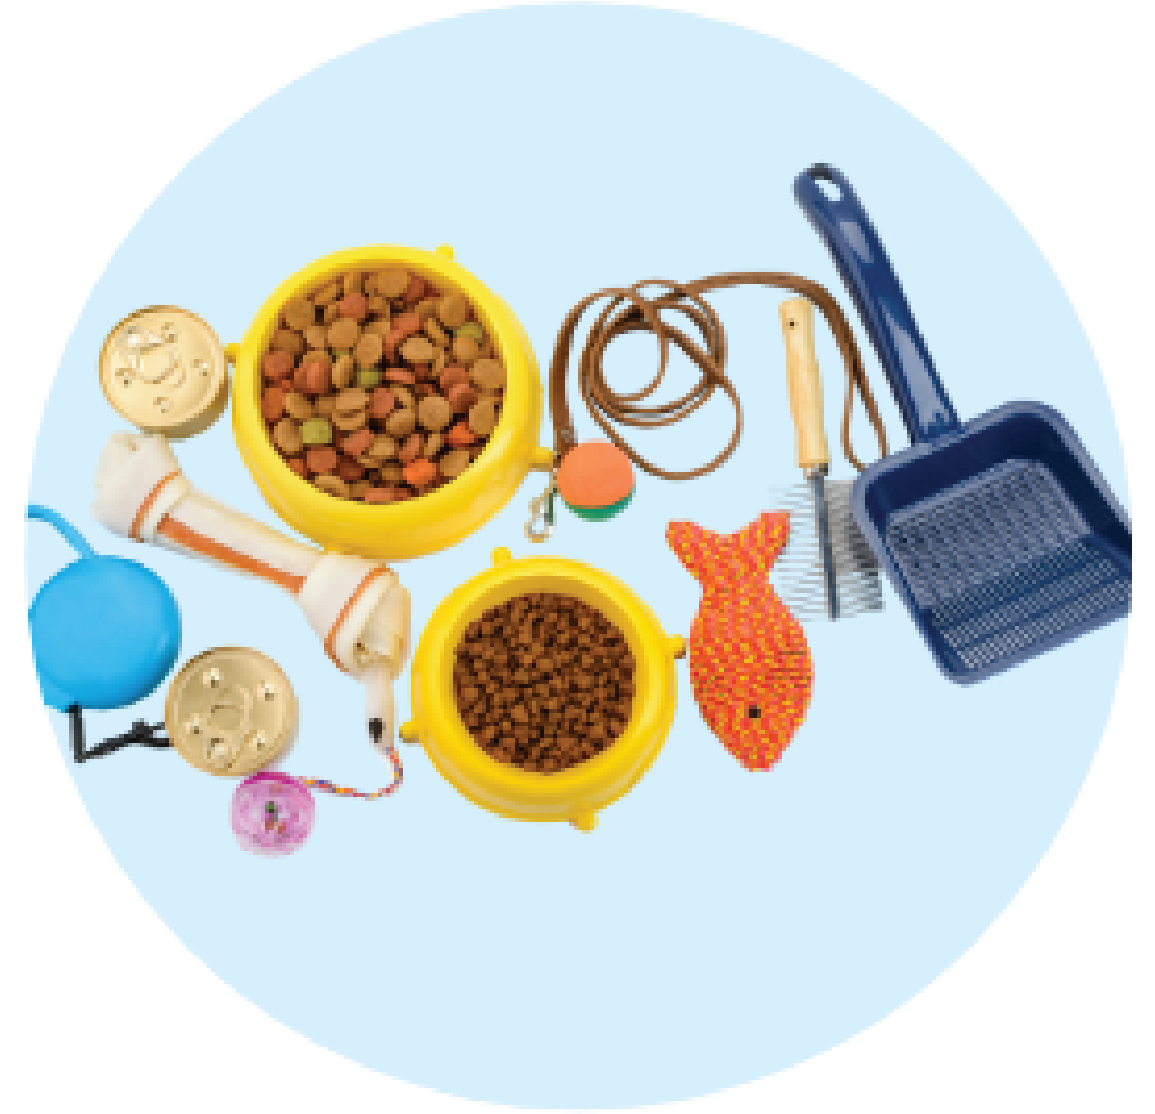 A wide variety of tested pet products